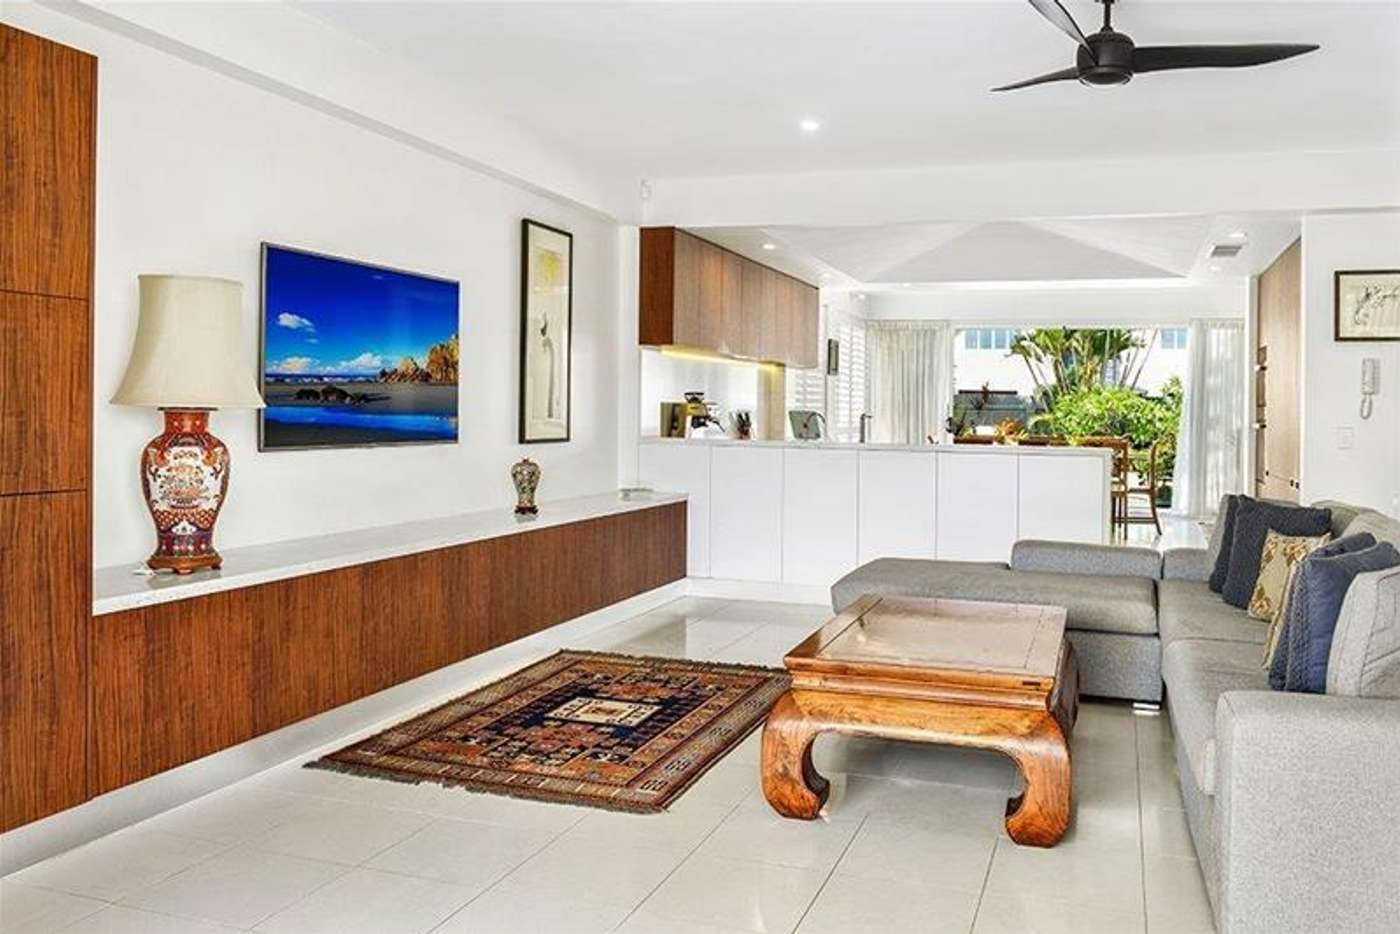 Sixth view of Homely house listing, 18 Midshipman Court, Paradise Waters QLD 4217